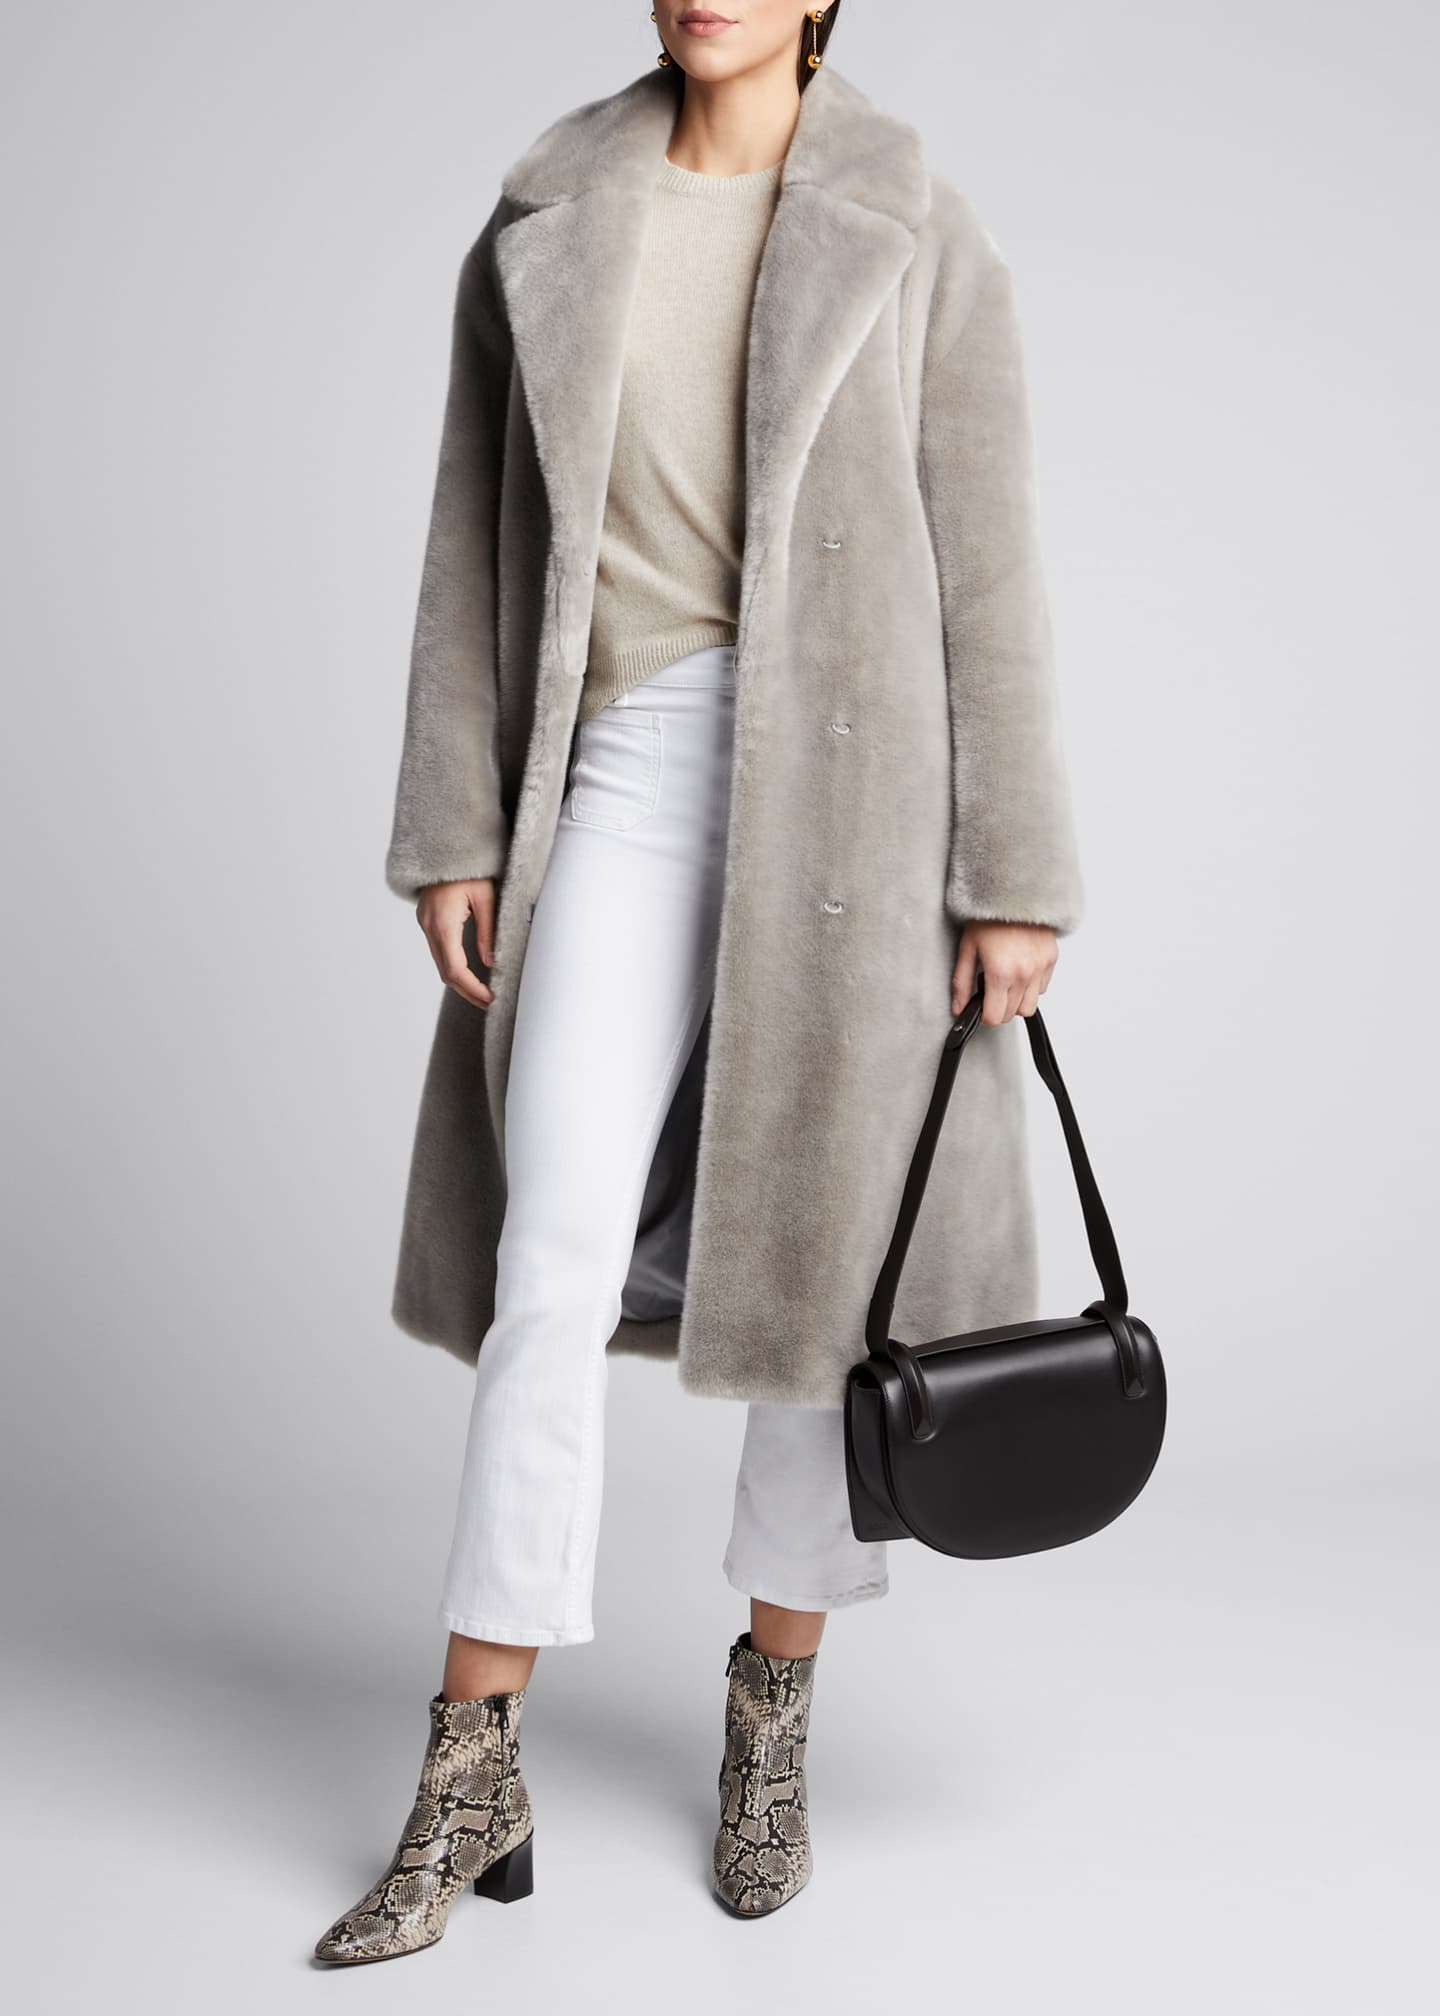 Luxe Faux Fur Oversized Trench Coat by Tibi